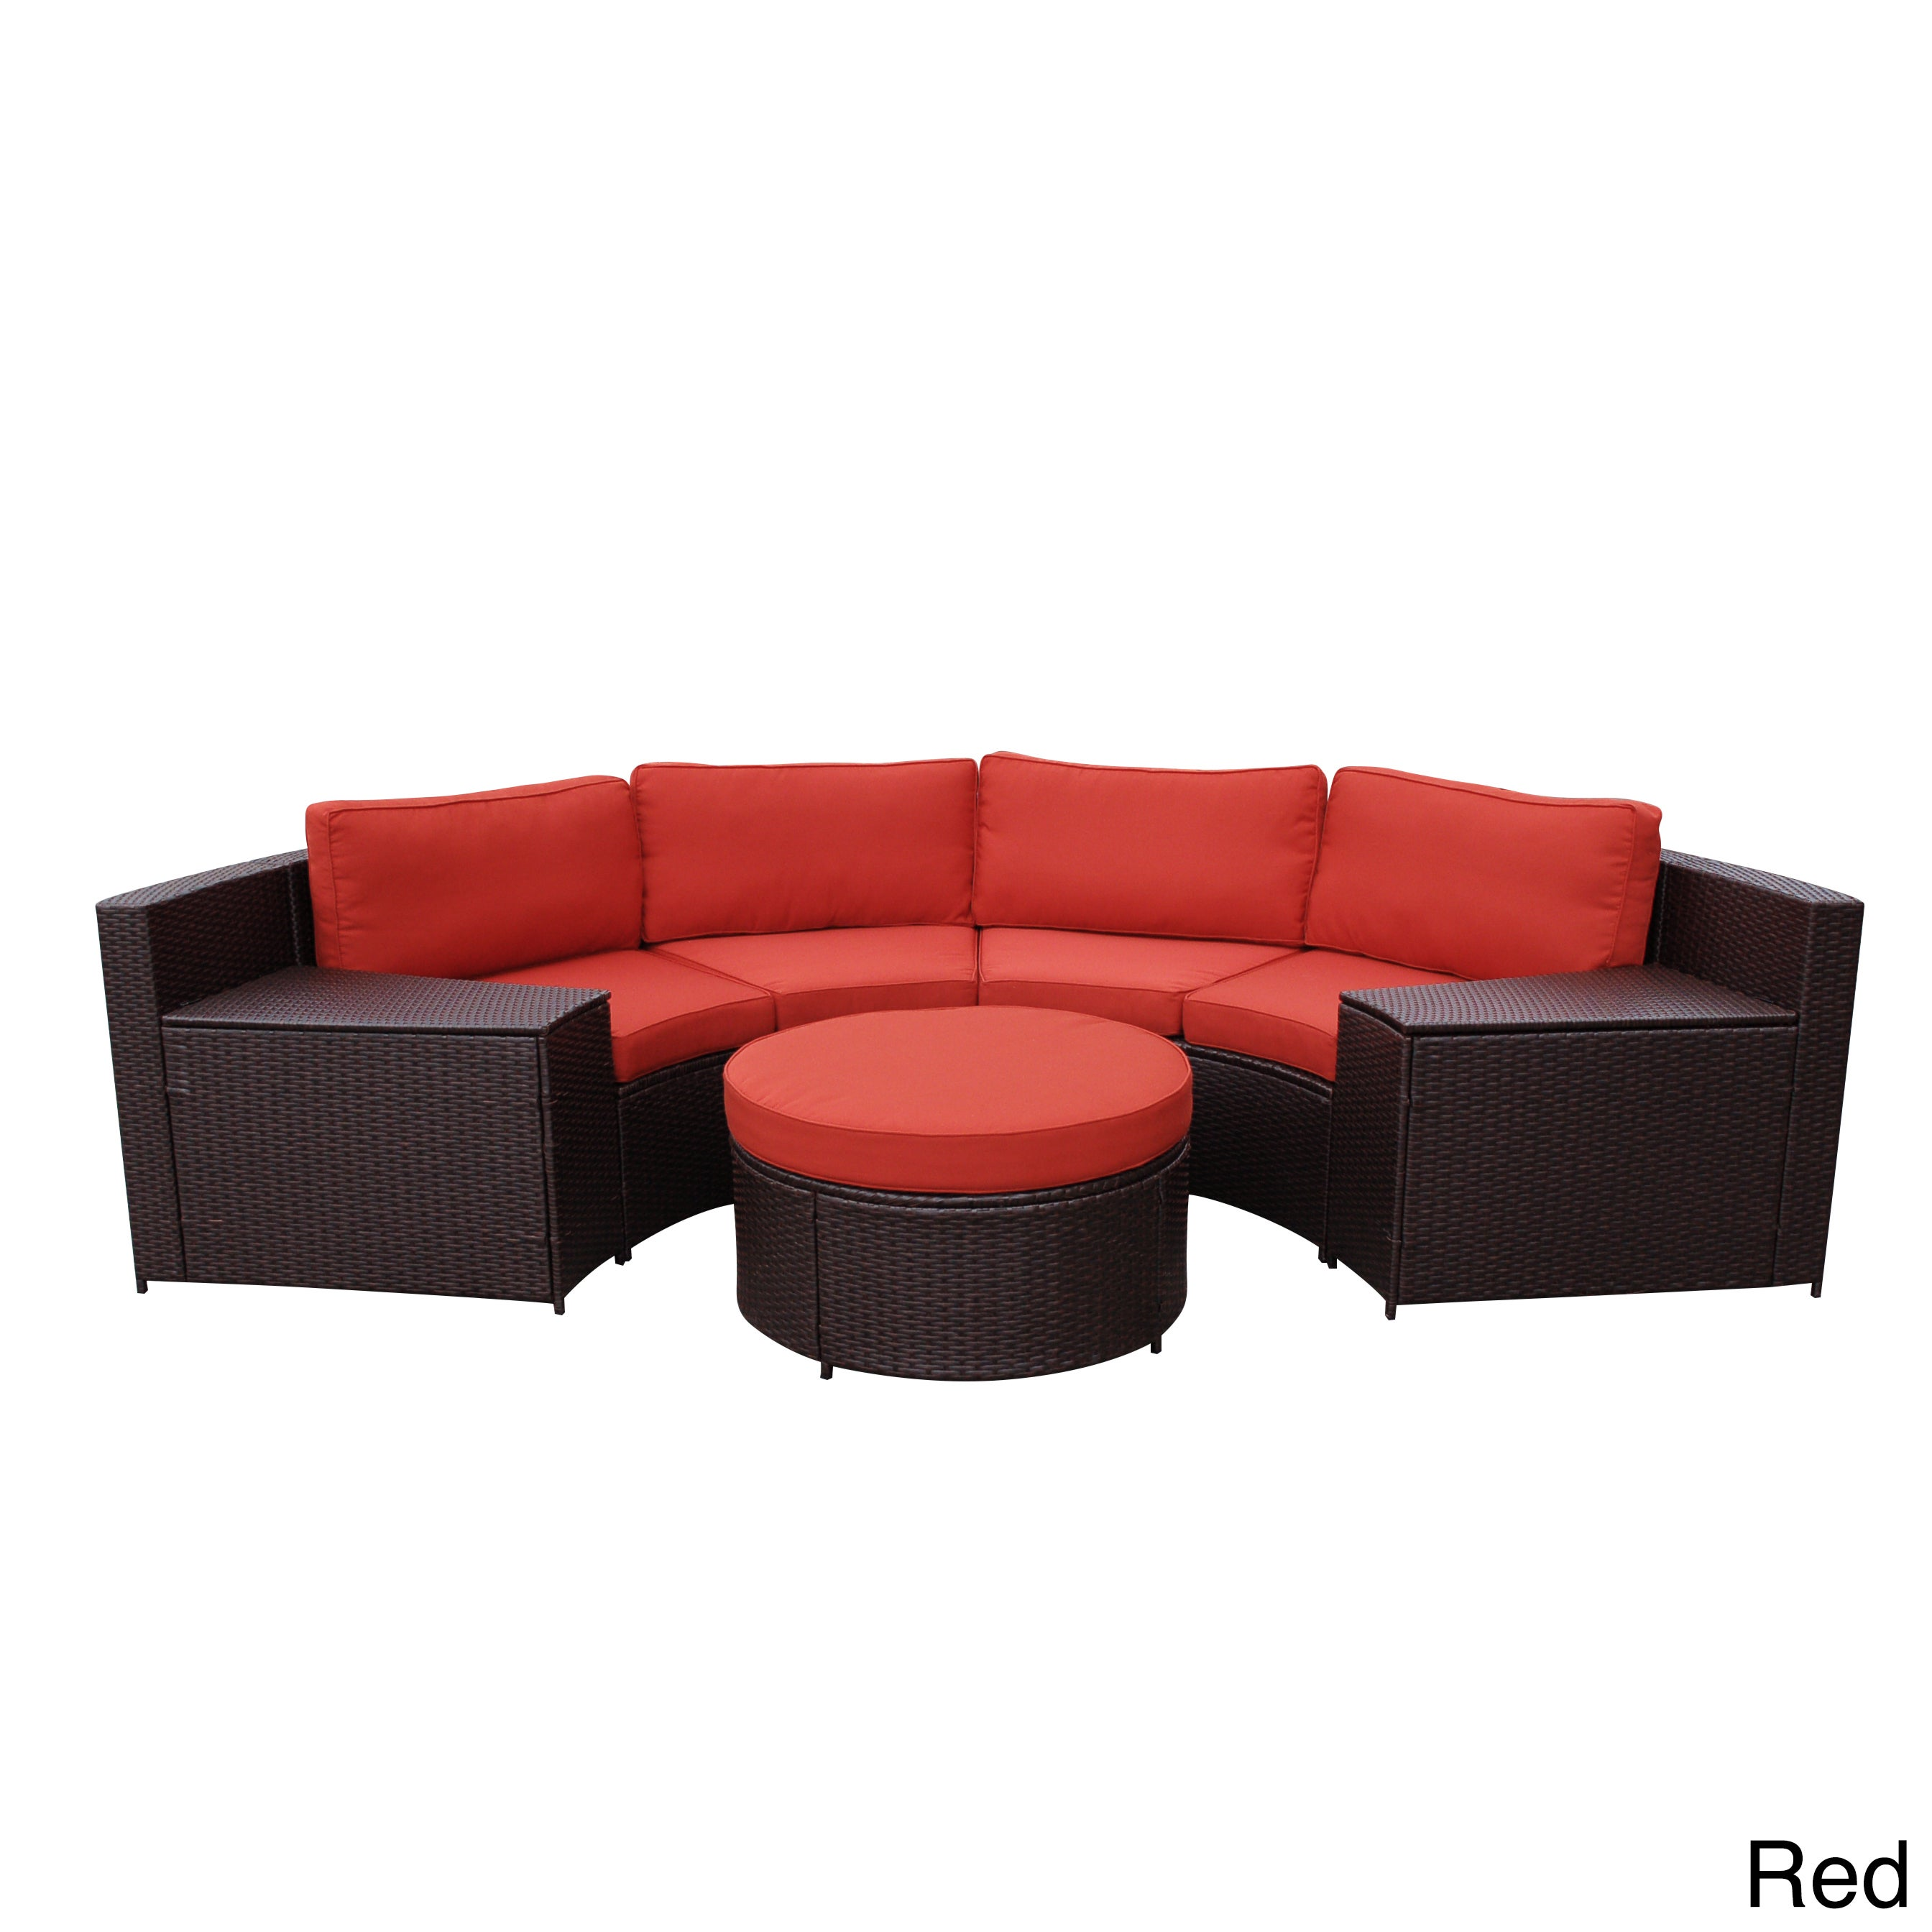 Jeco Cartagena Curved Modular Wicker Sofa With Cushions (...